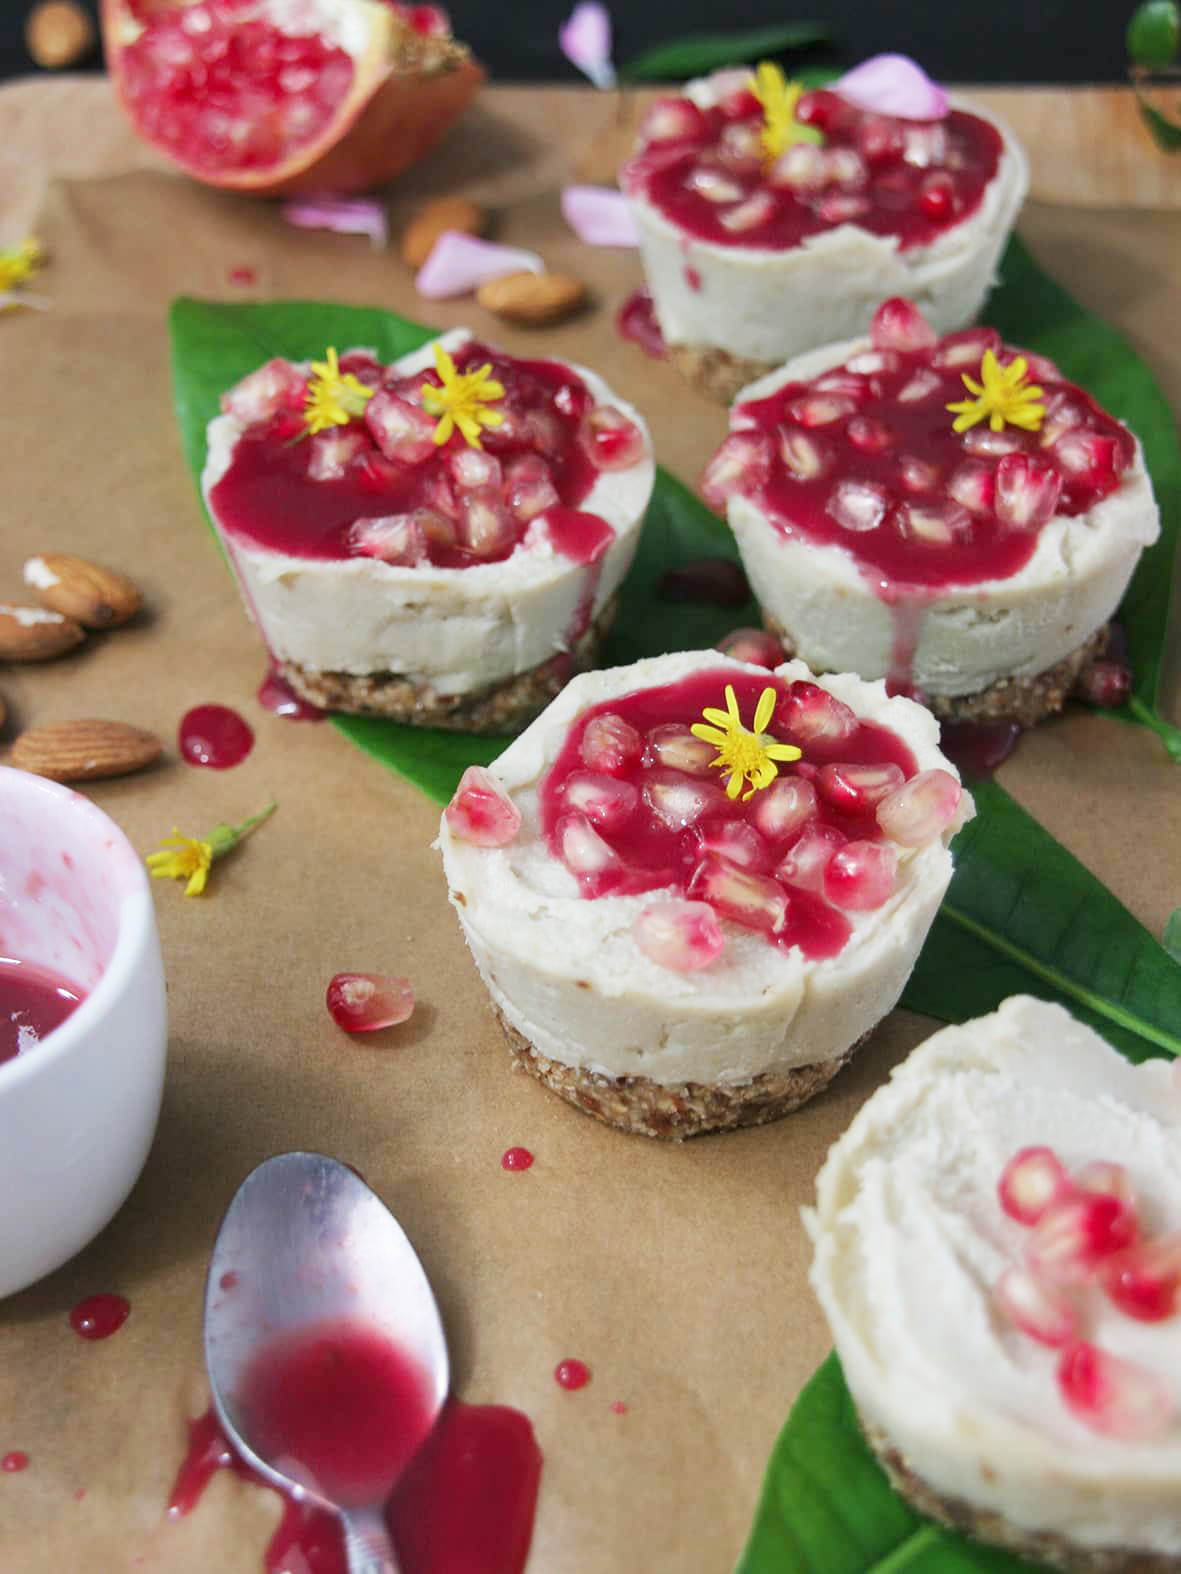 Vegan-mini-cheesecake-pomegranate-raspberry-syrup2-recipe-dessert